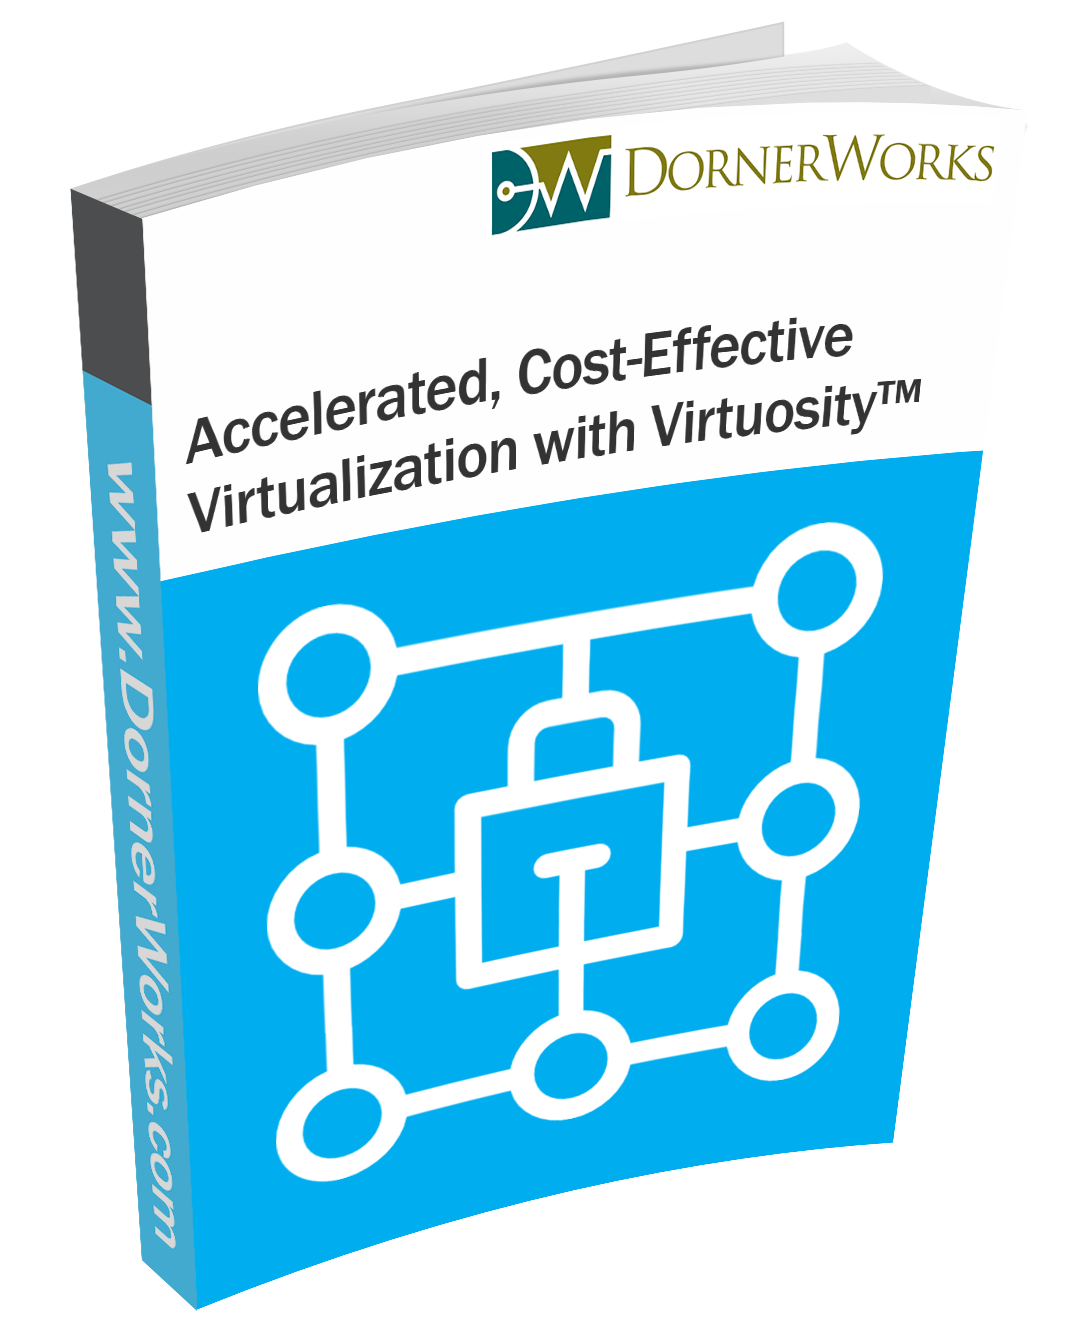 Accelerated, Cost-Effective Development: Embedded Virtualization with Virtuosity